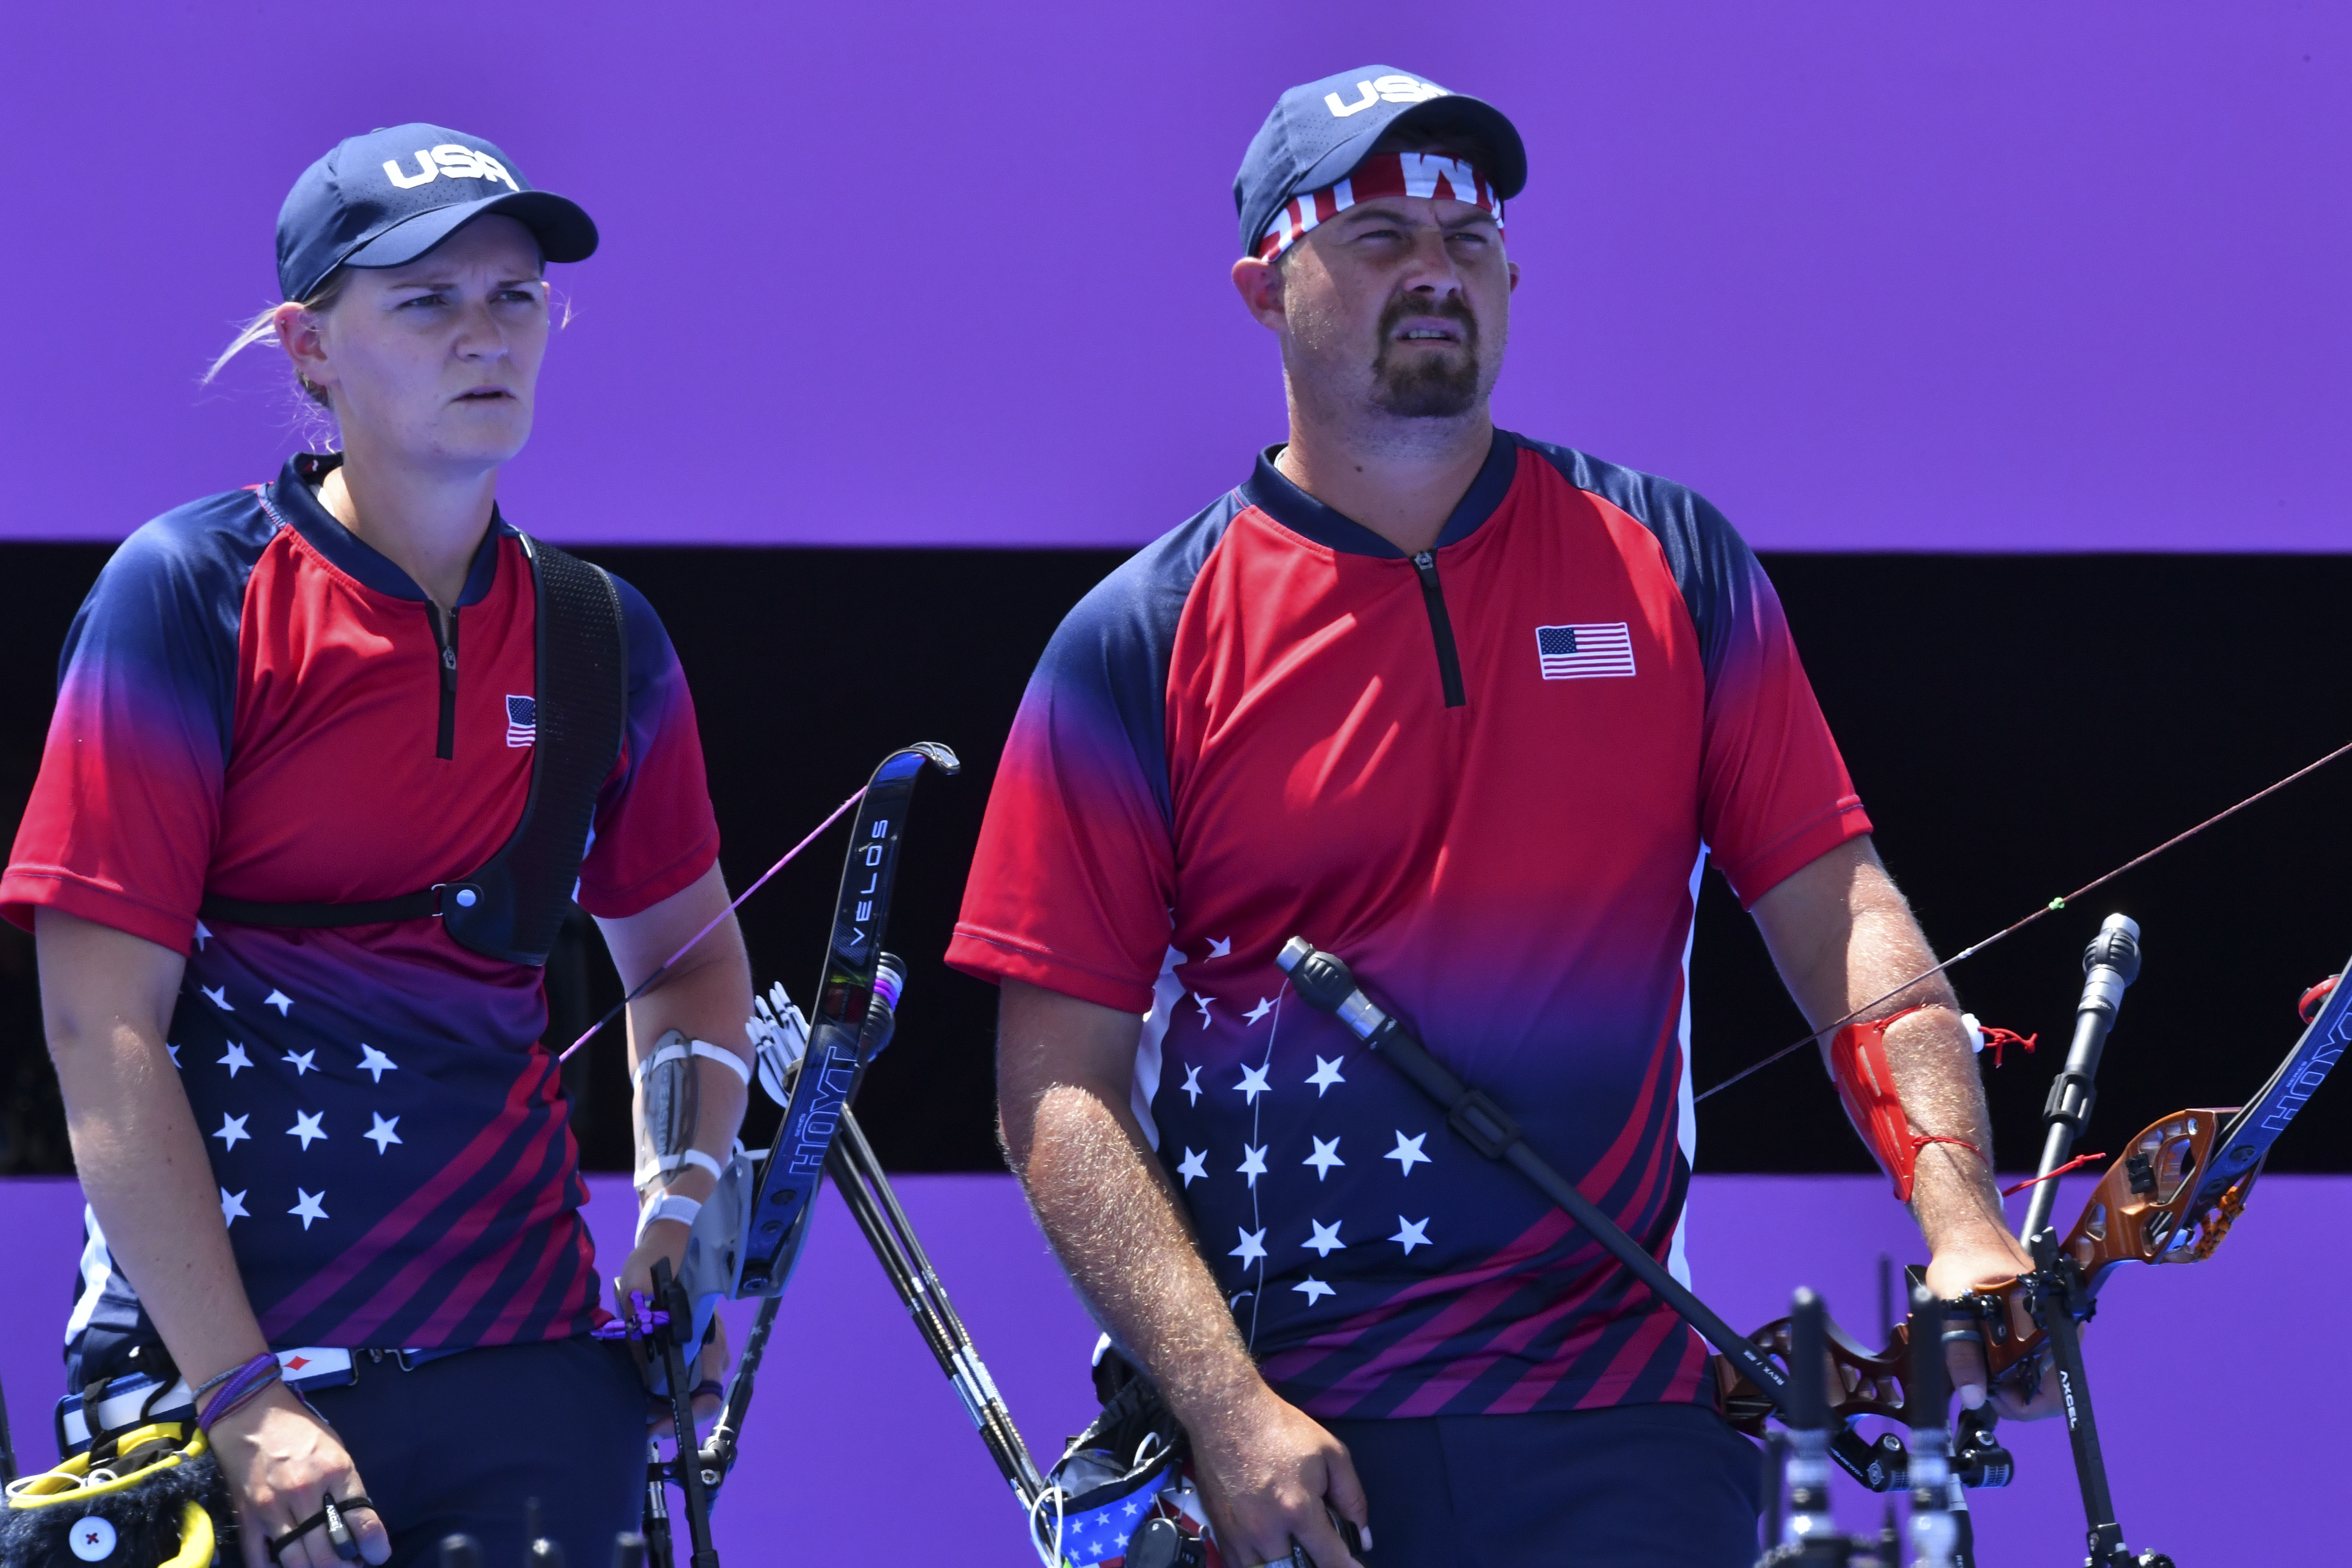 Tokyo 2020 Olympics - Archery - Mixed Team - 1/8 Finals - Yumenoshima Archery Field, Tokyo, Japan - July 24, 2021. Mackenzie Brown of the United States and Brady Ellison of the United States during competition REUTERS/Clodagh Kilcoyne